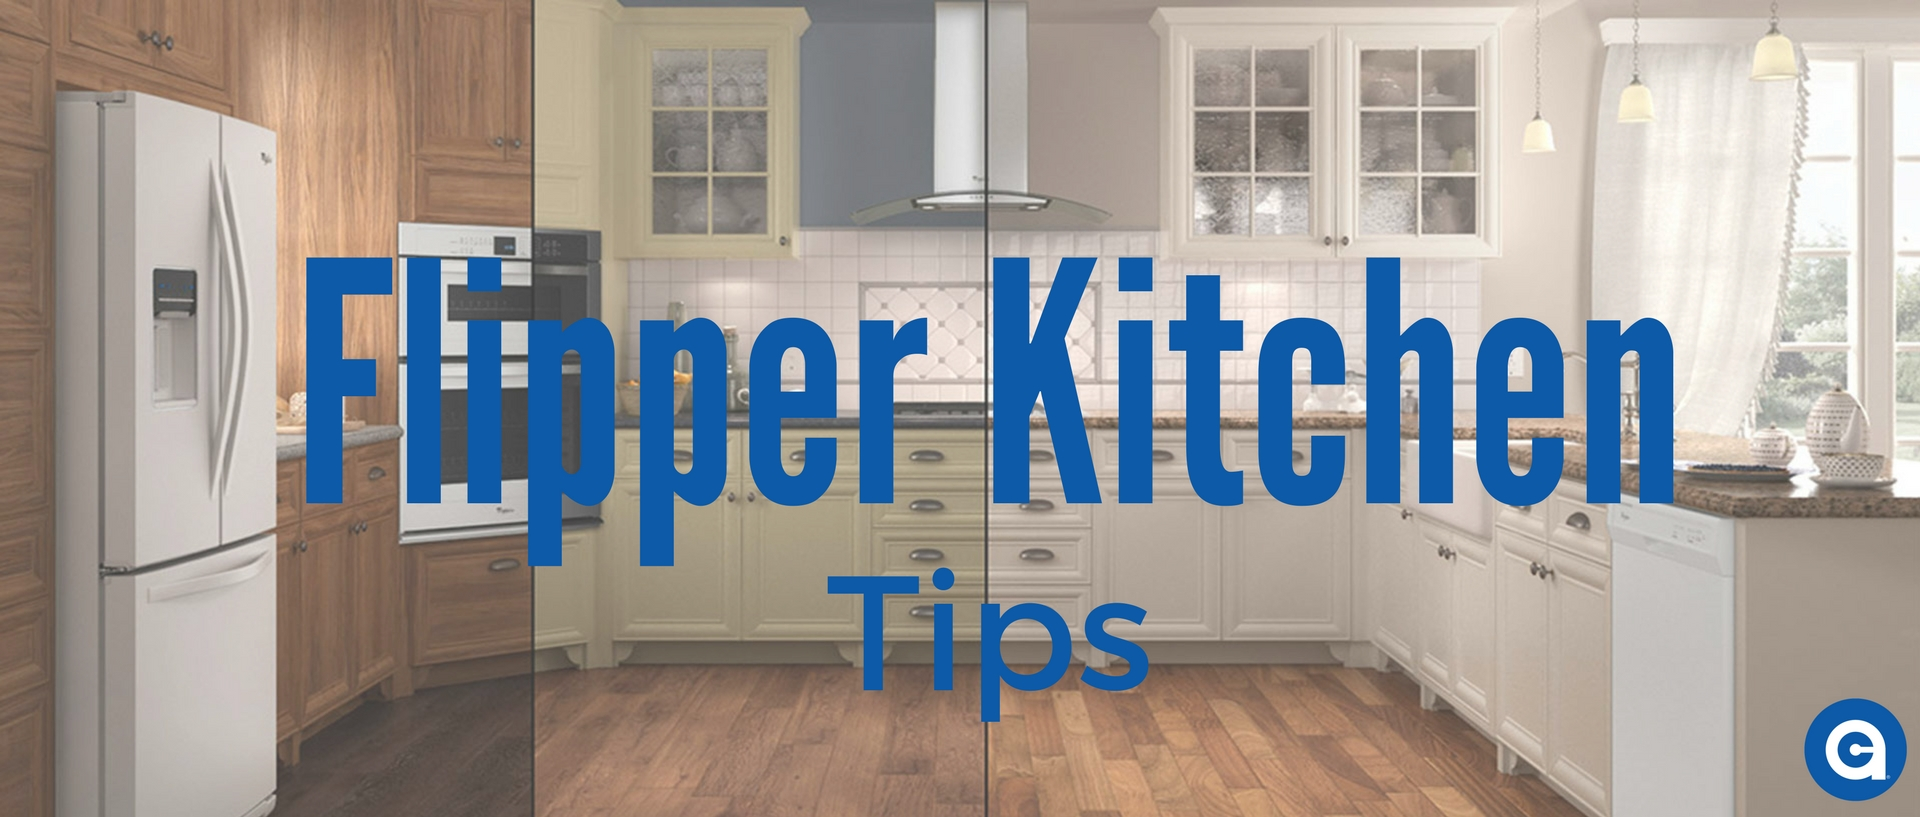 Flipper Kitchen Tips: How to Remodel Your Kitchen for a Profit ...